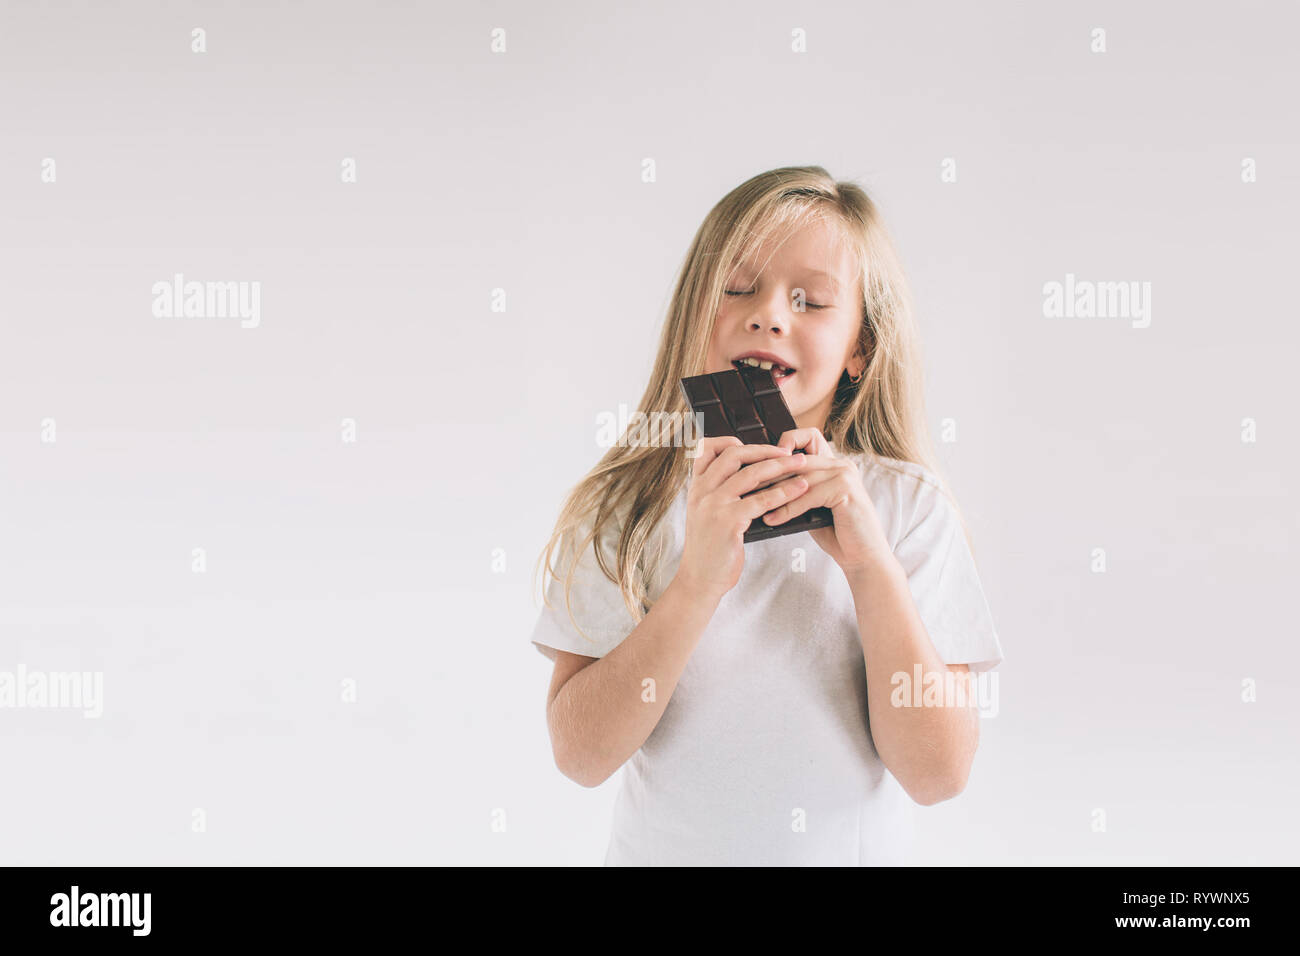 young child eating a chocolate bar. Blondy girl isolated on white background - Stock Image